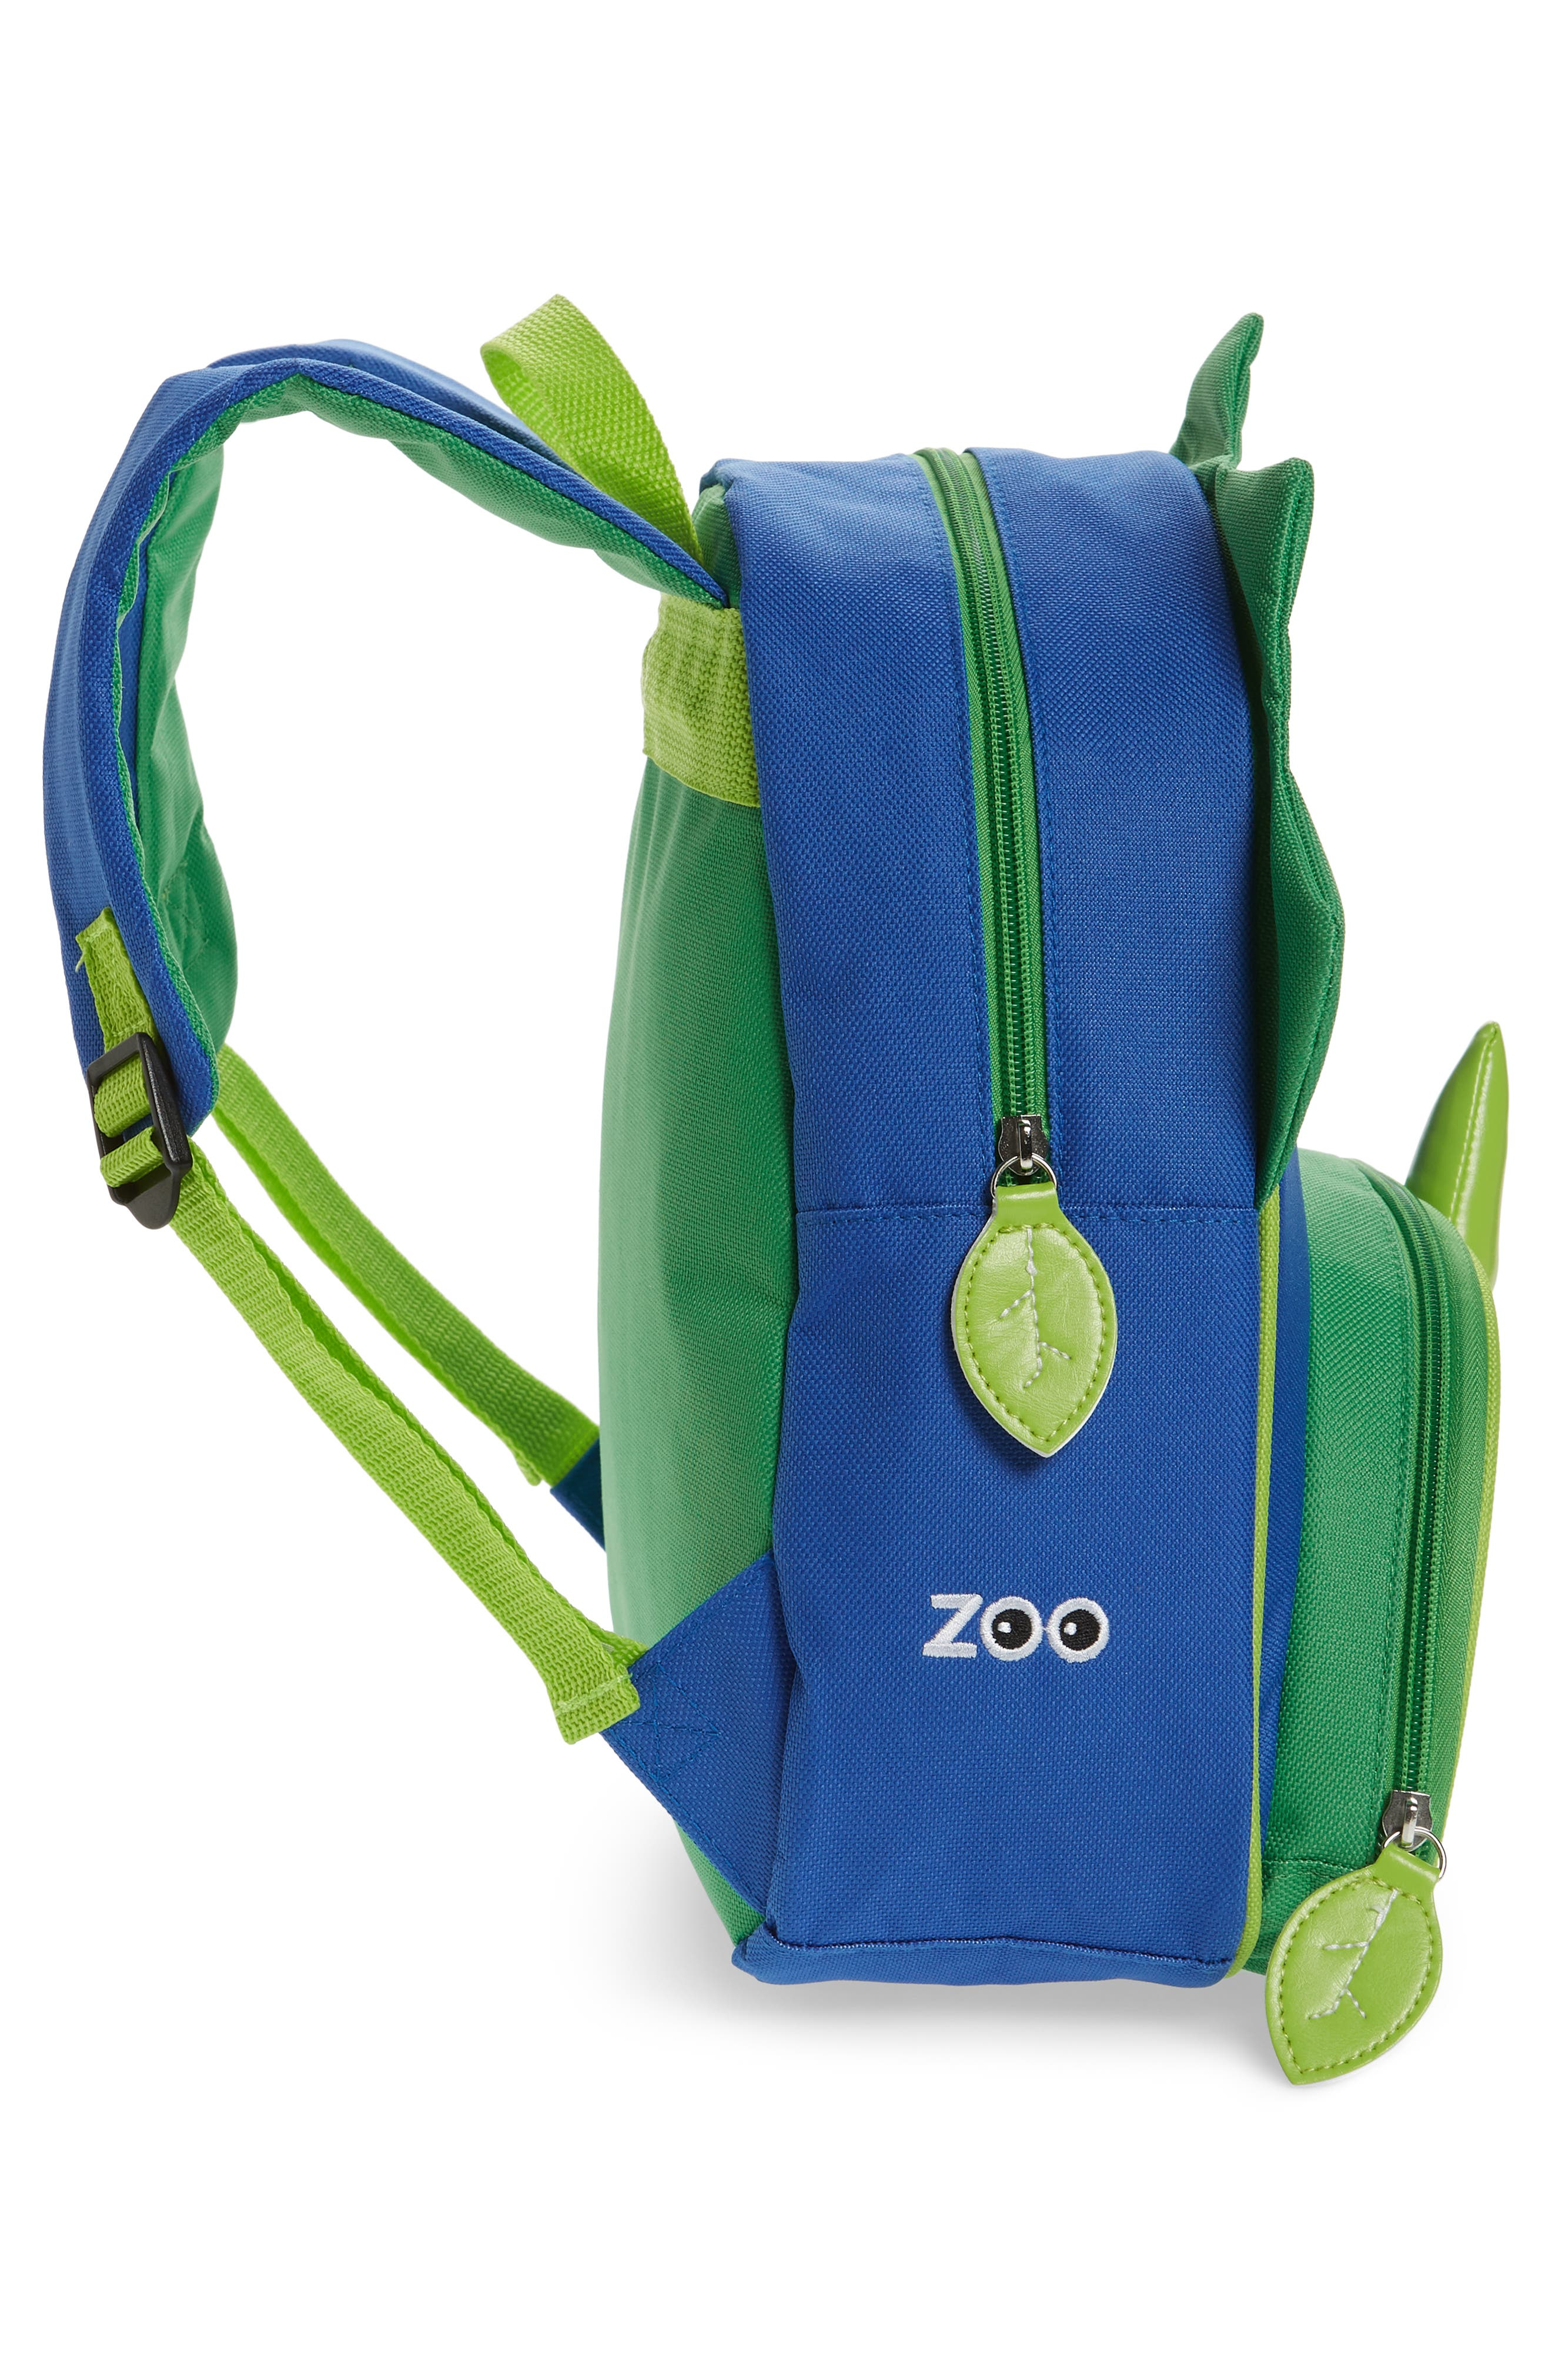 Zoo Pack Backpack,                             Alternate thumbnail 3, color,                             Green/ Blue